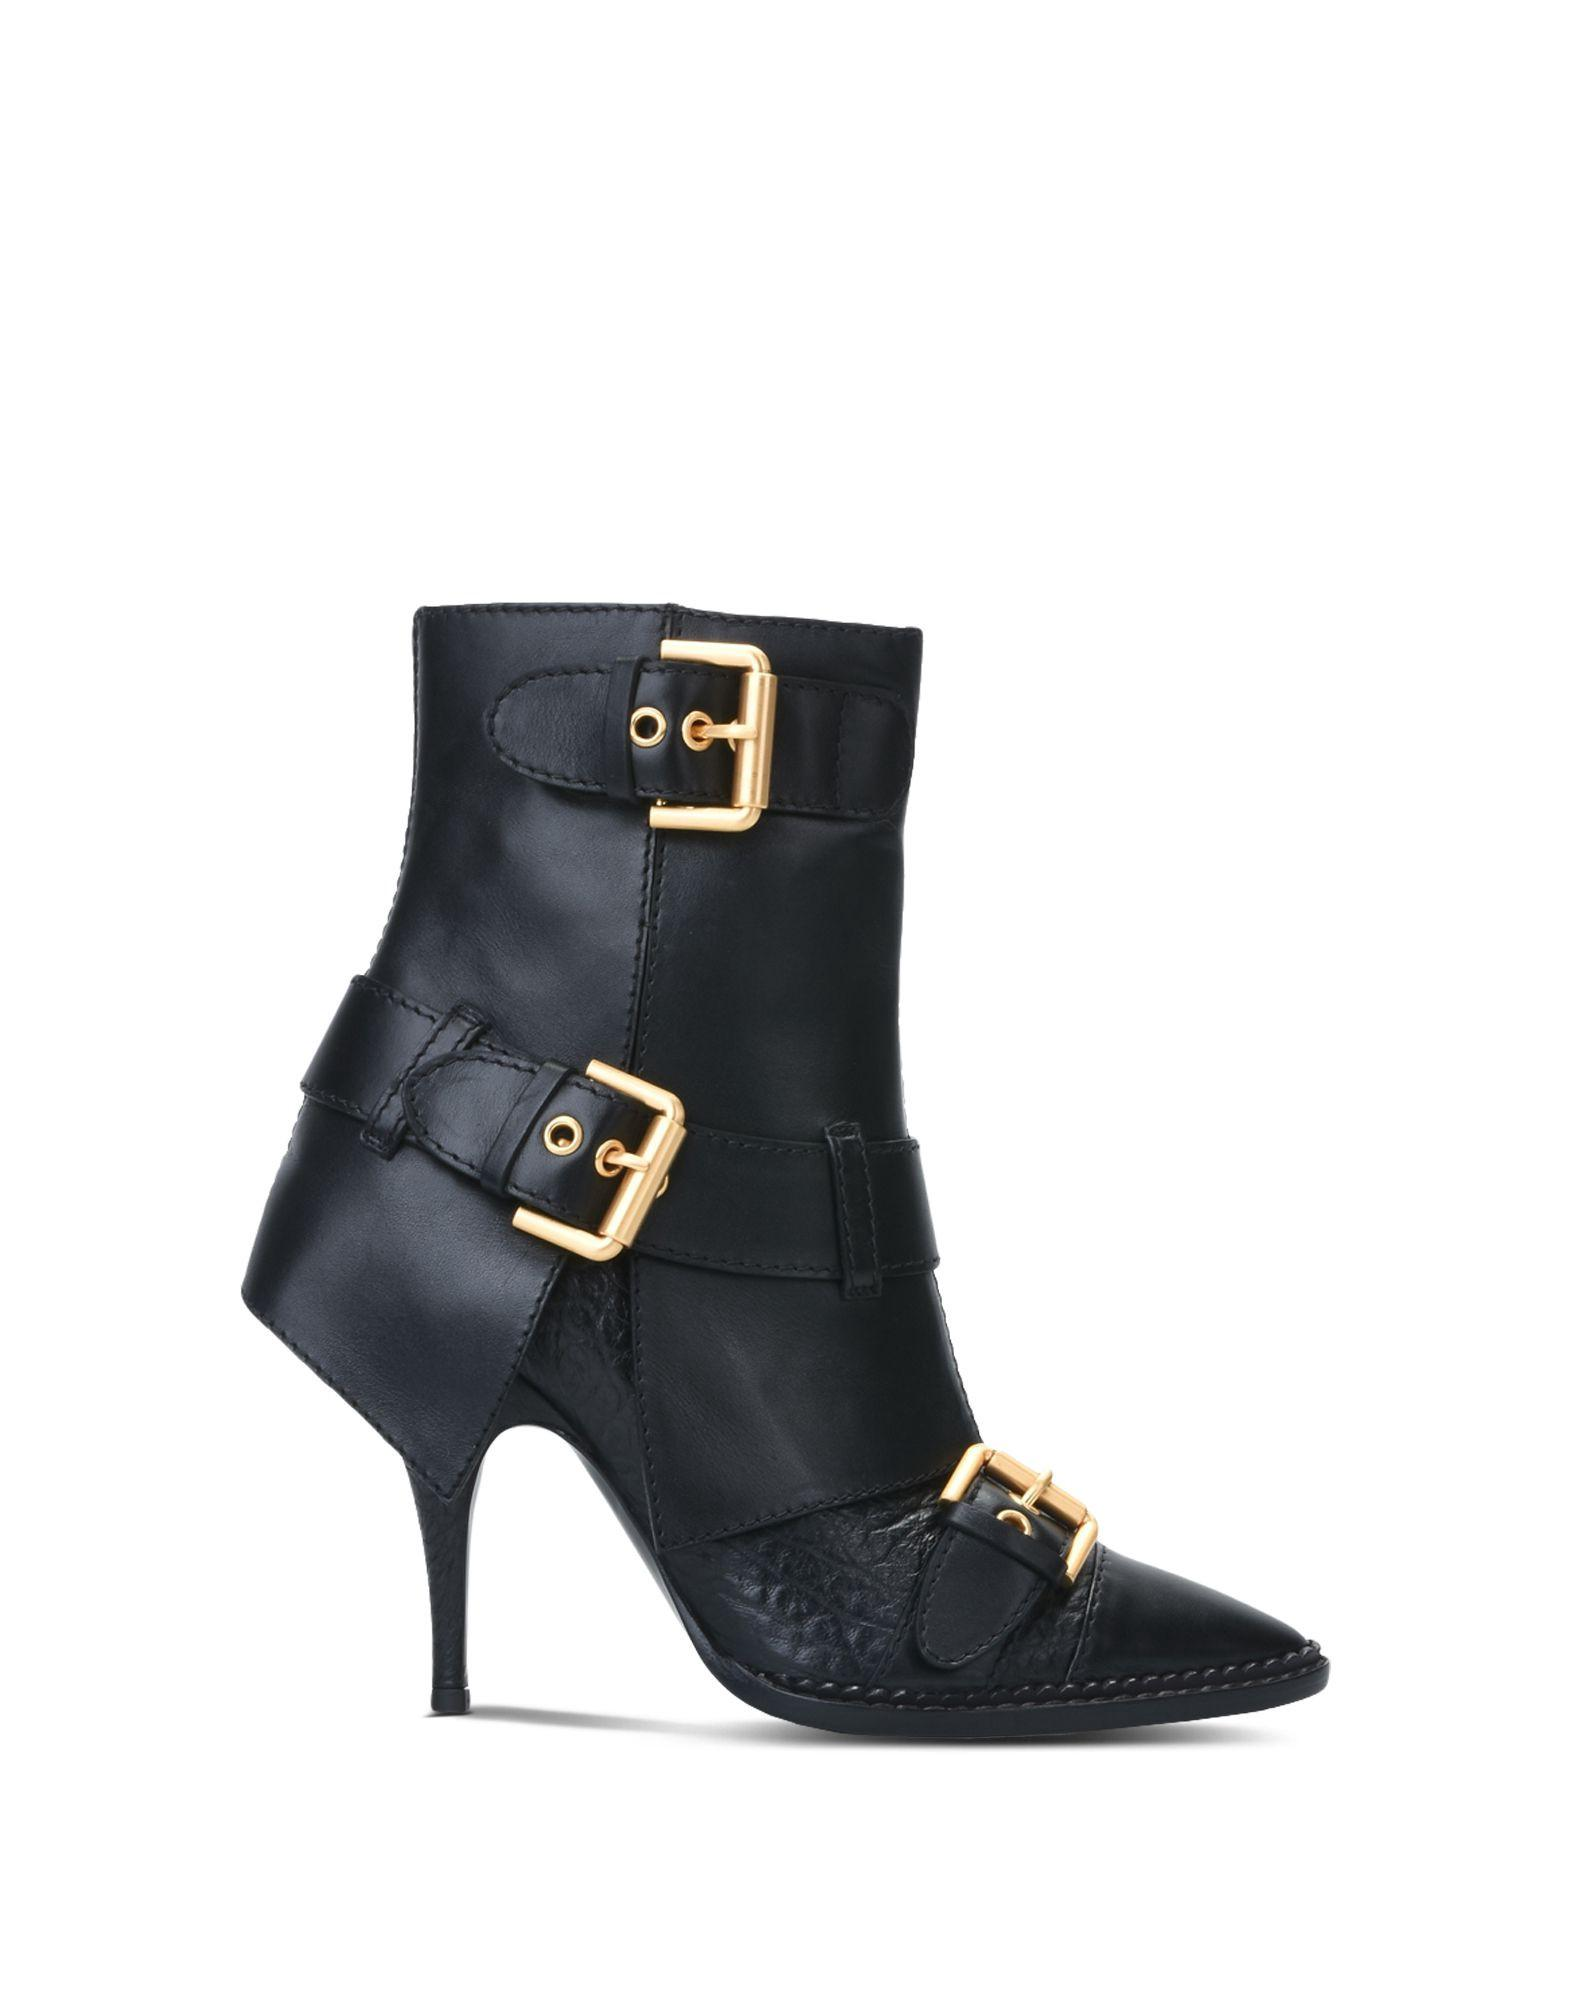 Moschino Boots In Black